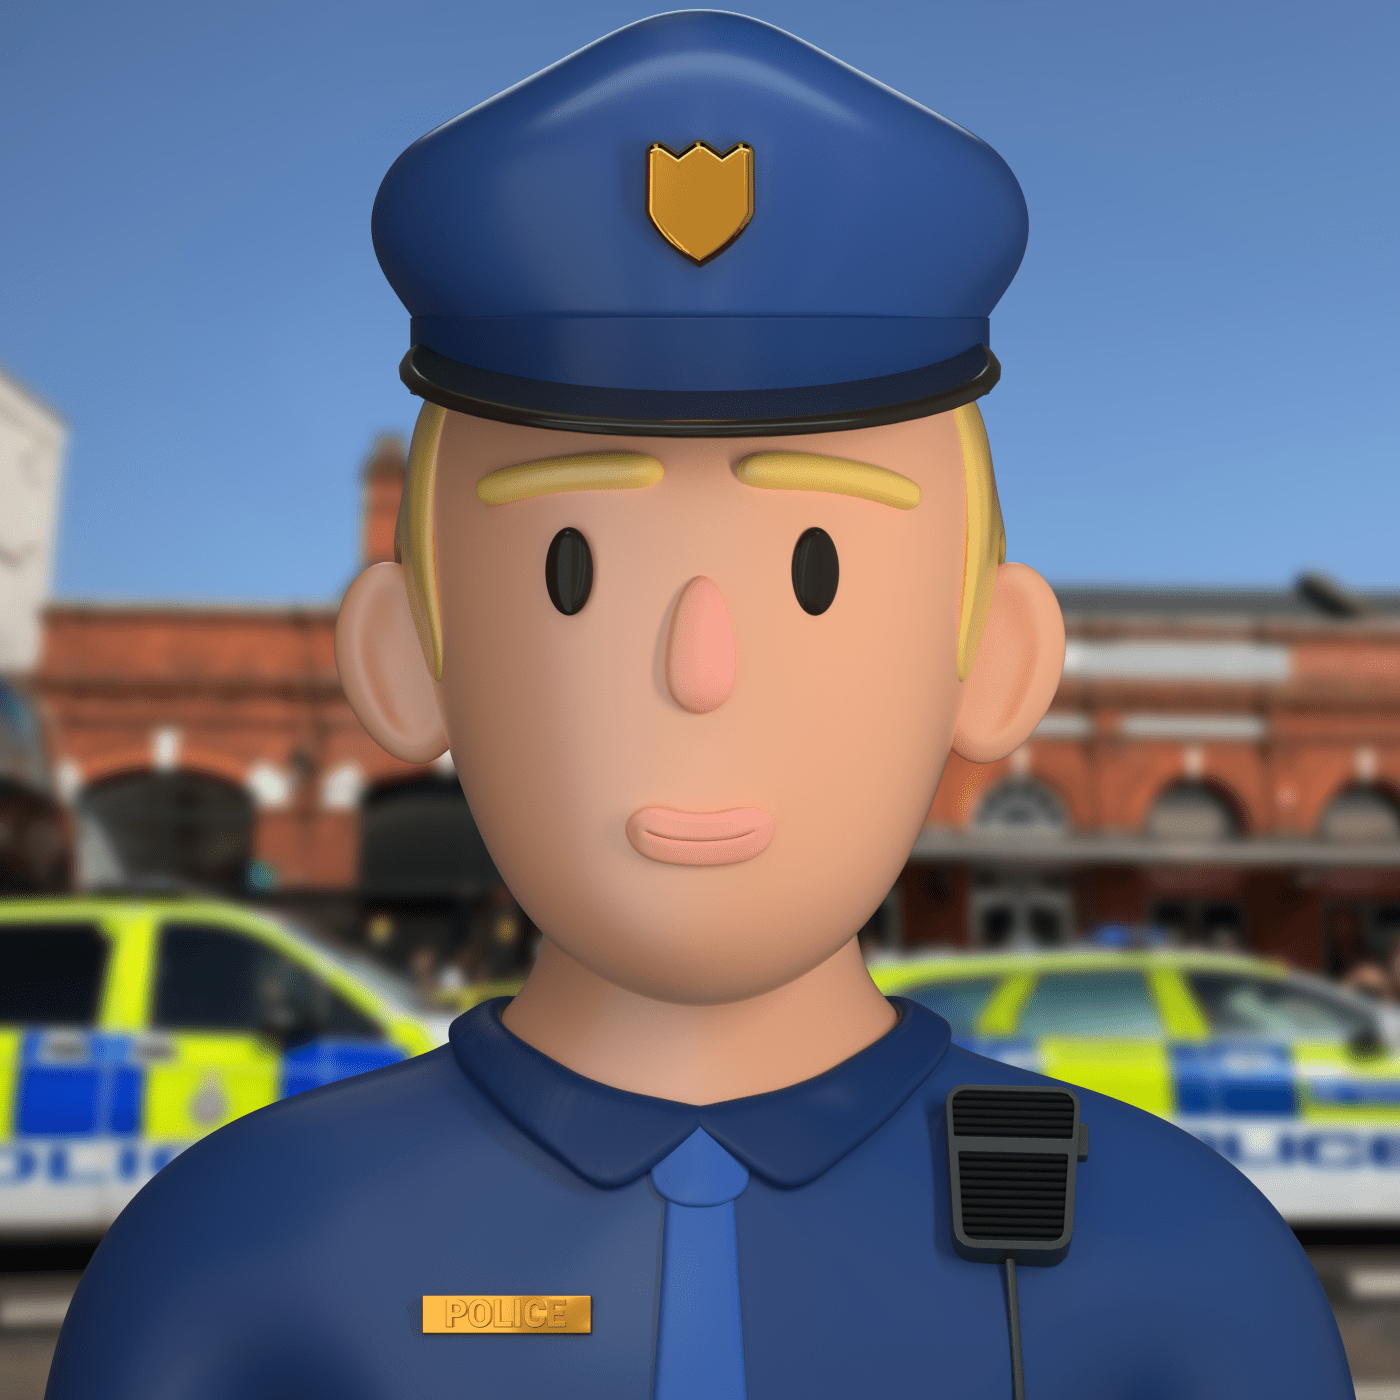 a cop character in 3d design style